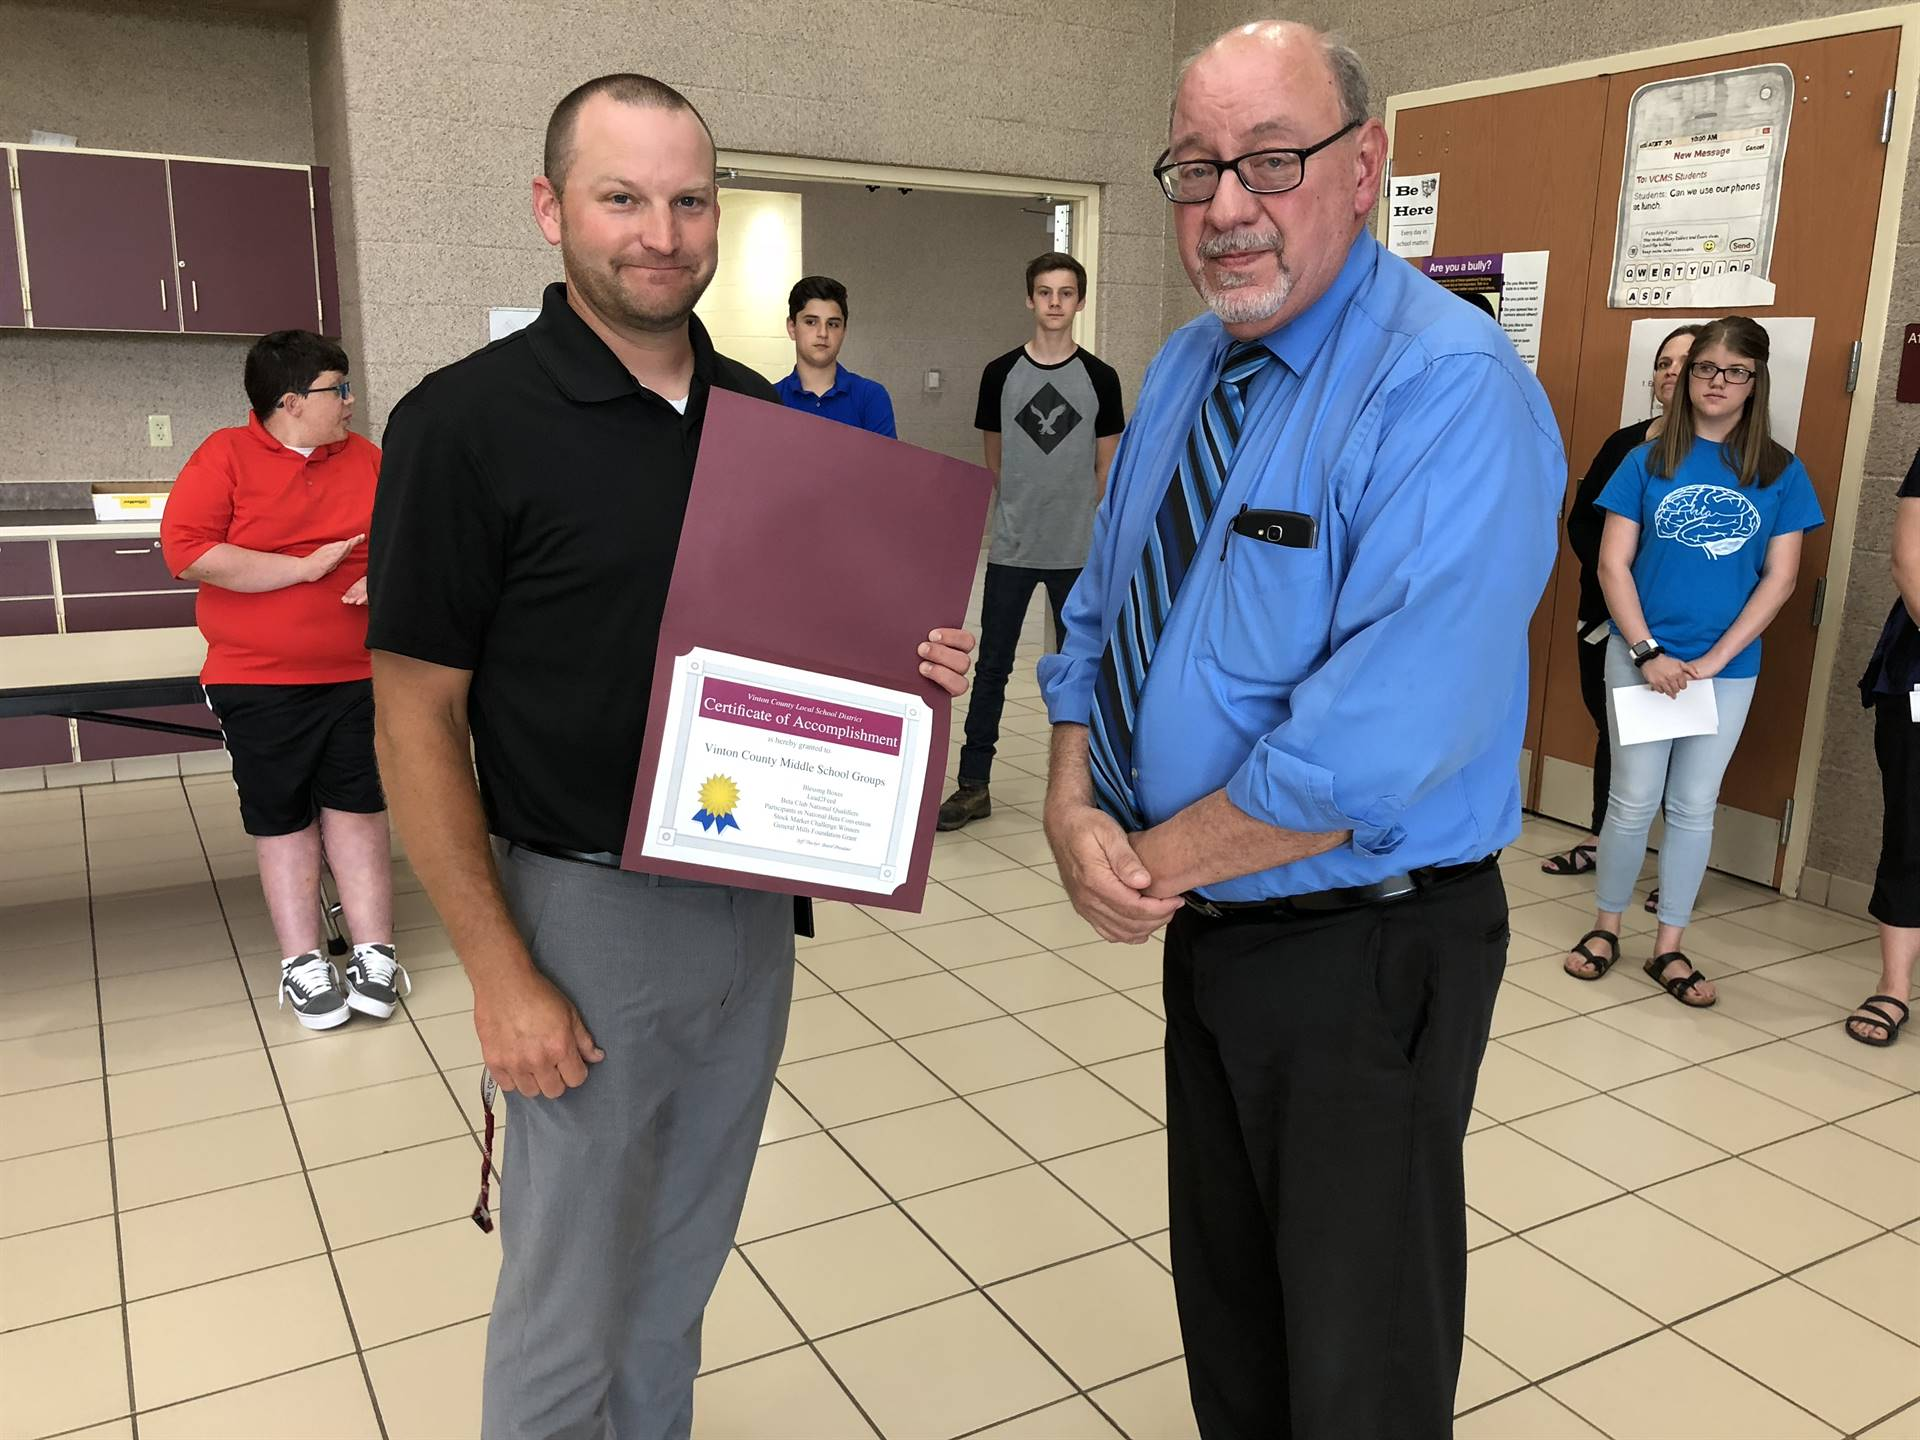 Mr. Ward accepting Middle School Recognition Certificate